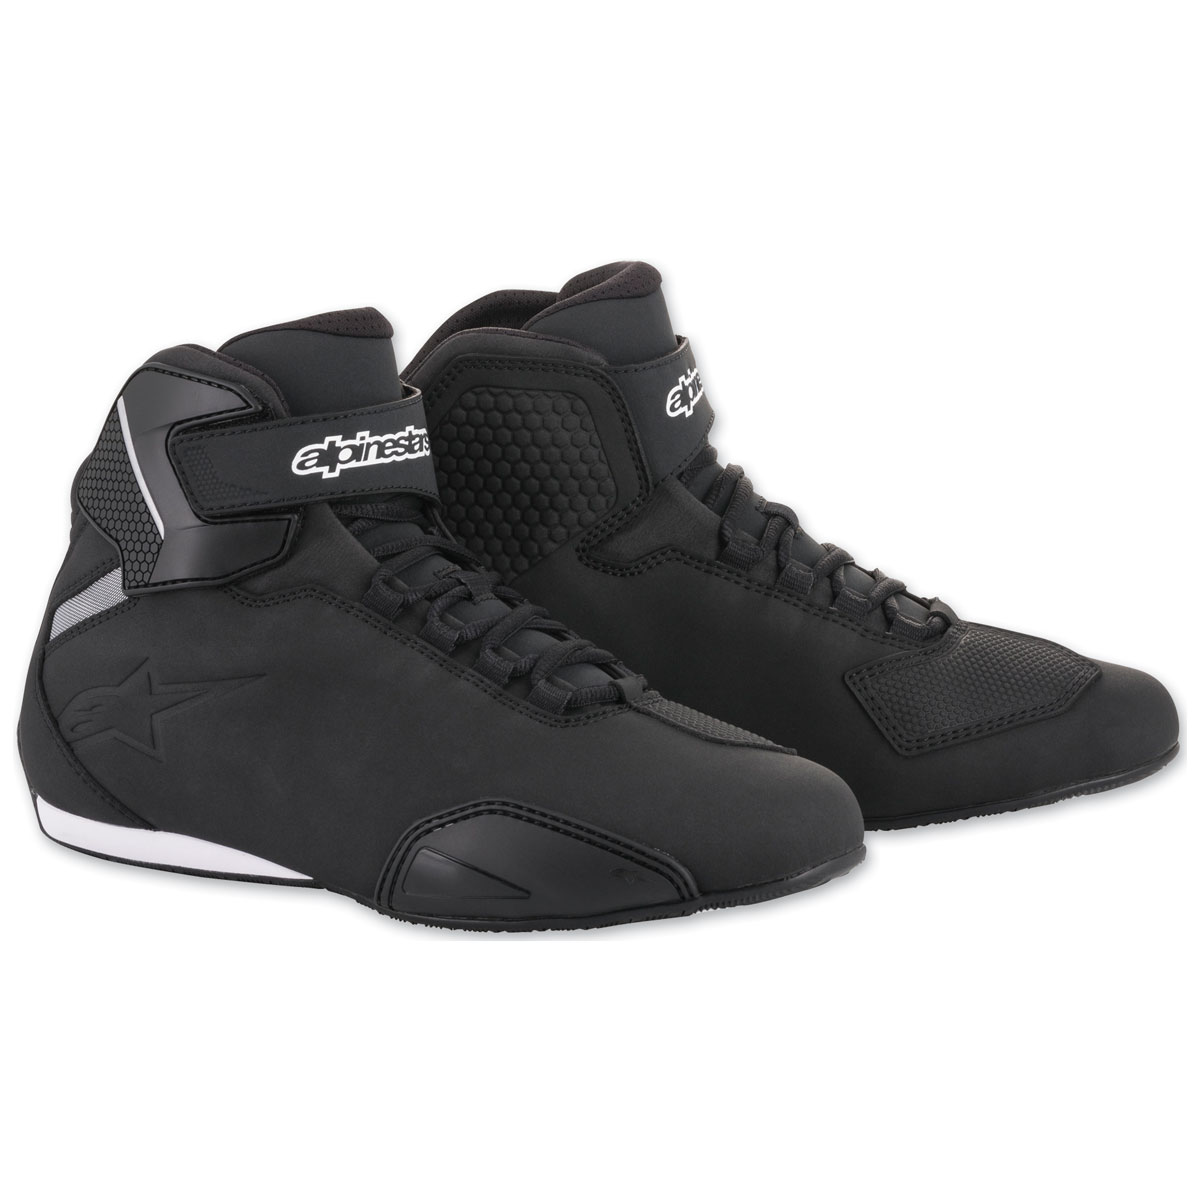 Alpinestars Men's Sektor Black Shoes